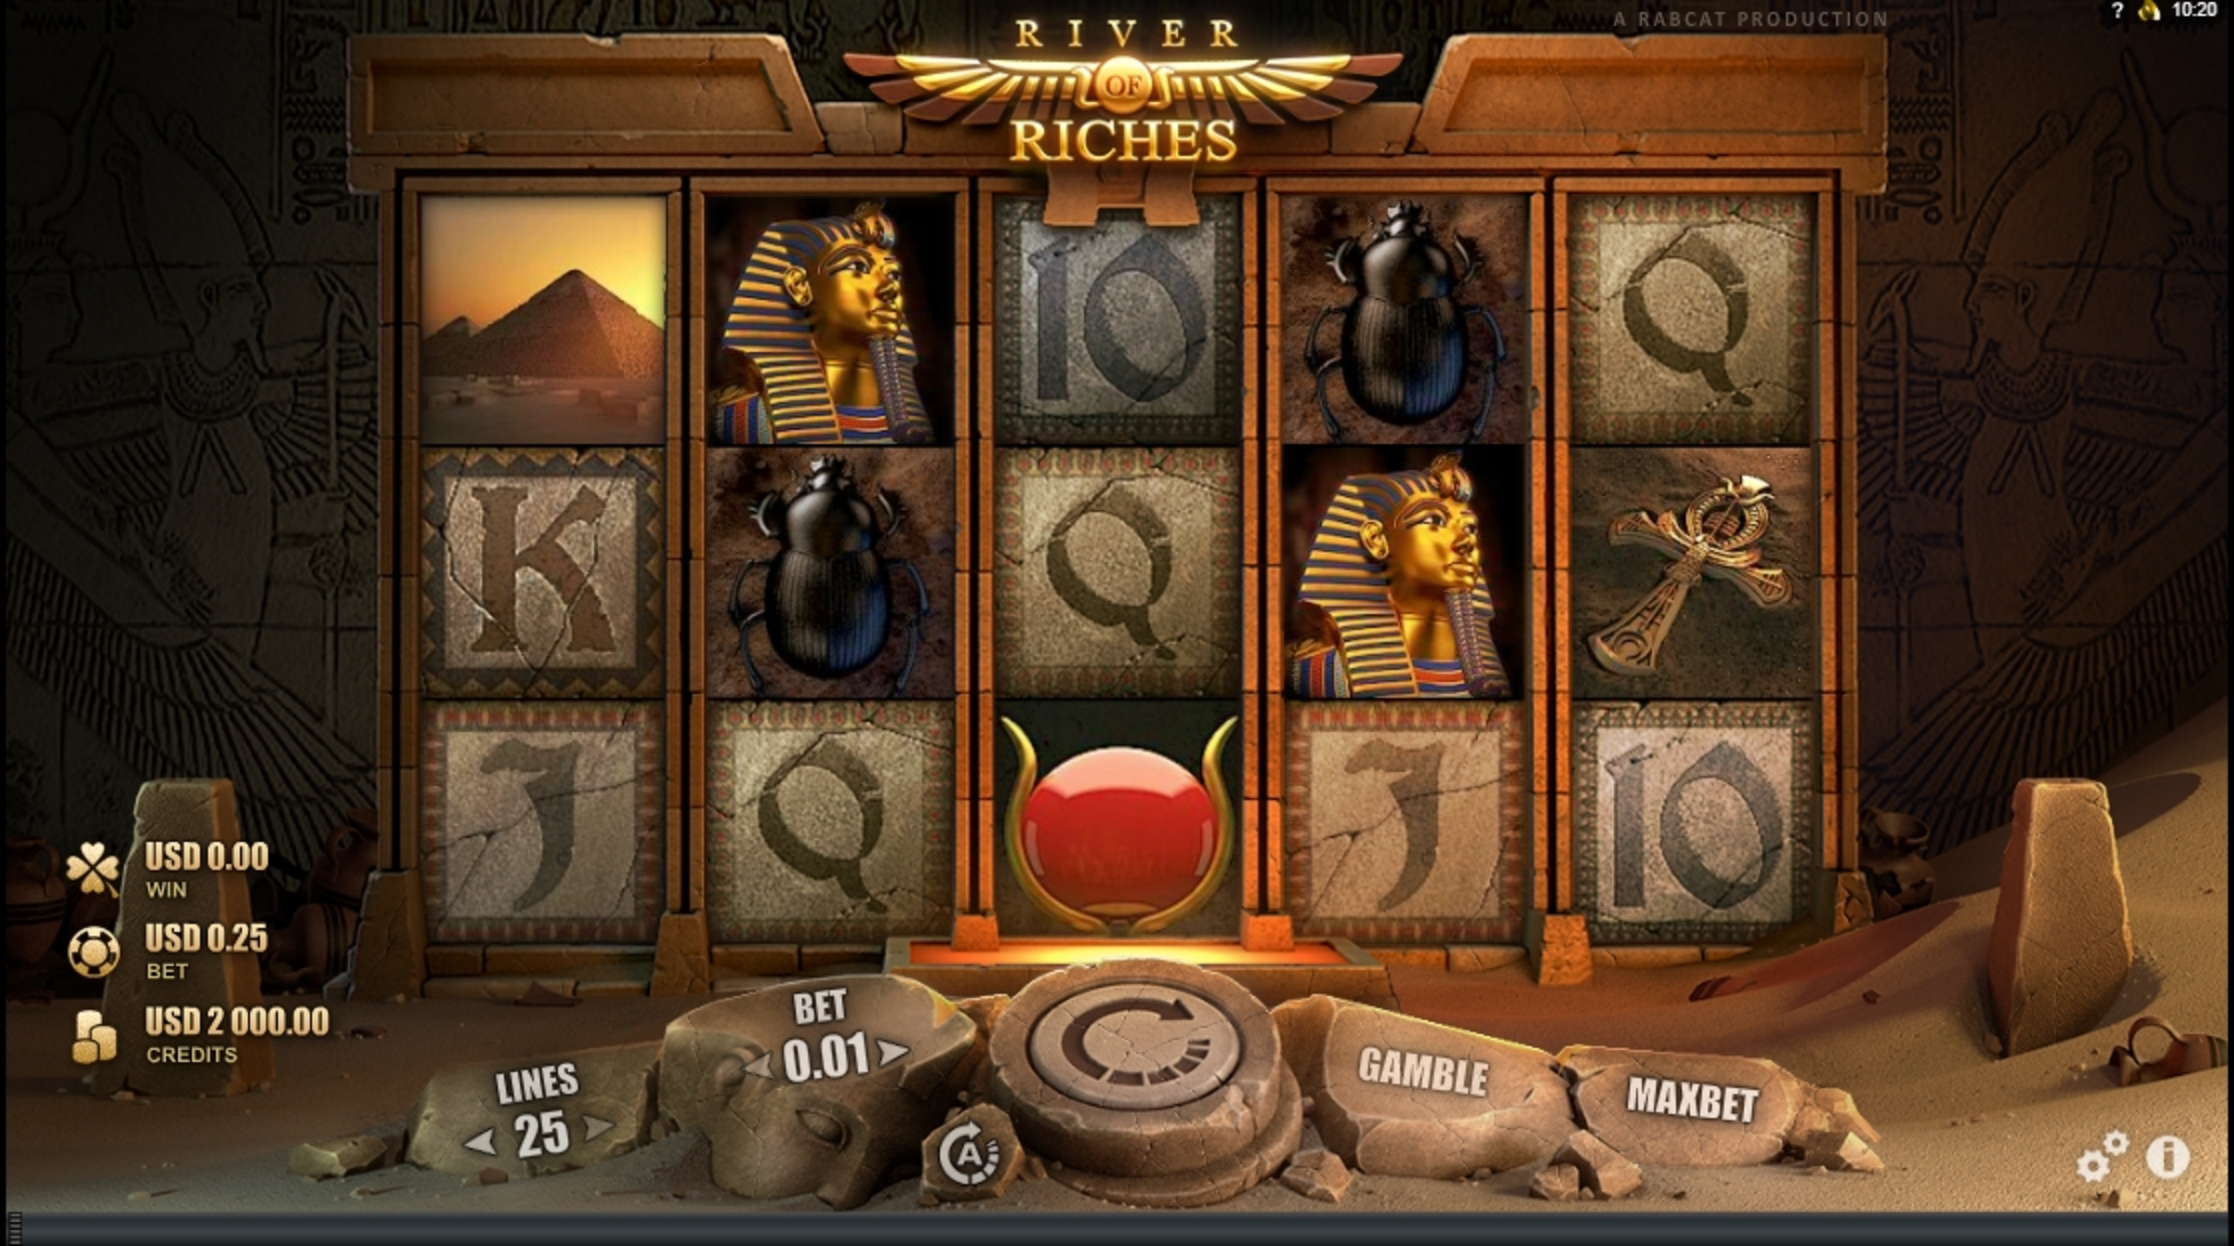 Reels in River of Riches Slot Game by Rabcat